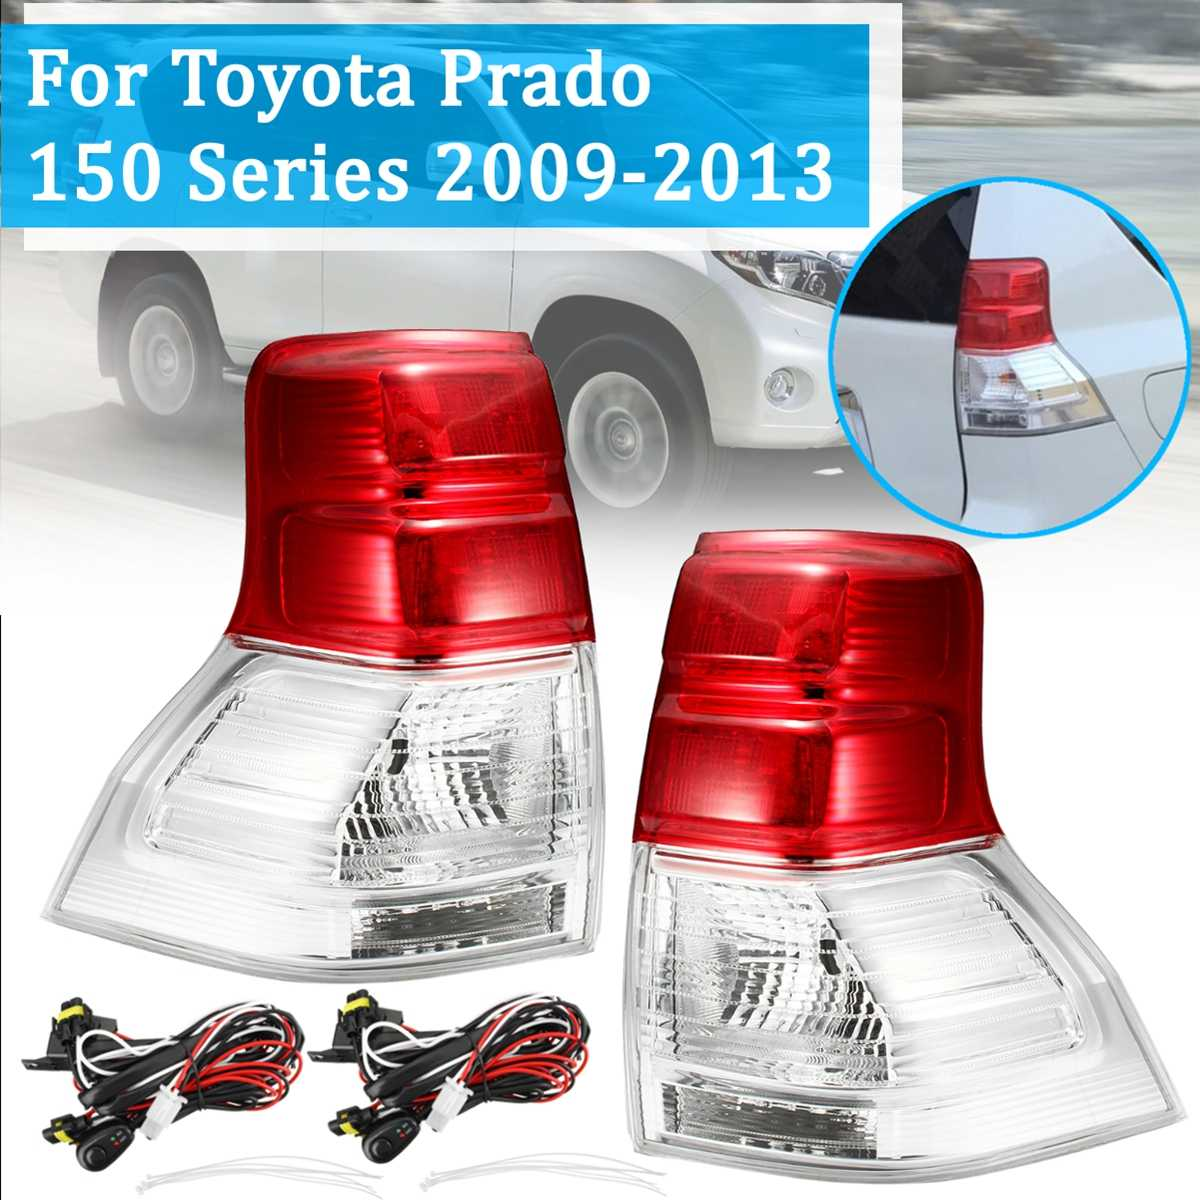 For TOYOTA PRADO 150 SERIES 09-2013 1Pair Tail Light Lamp Without Bulb With Harness Left Right Brake Rear Light Car StylingFor TOYOTA PRADO 150 SERIES 09-2013 1Pair Tail Light Lamp Without Bulb With Harness Left Right Brake Rear Light Car Styling